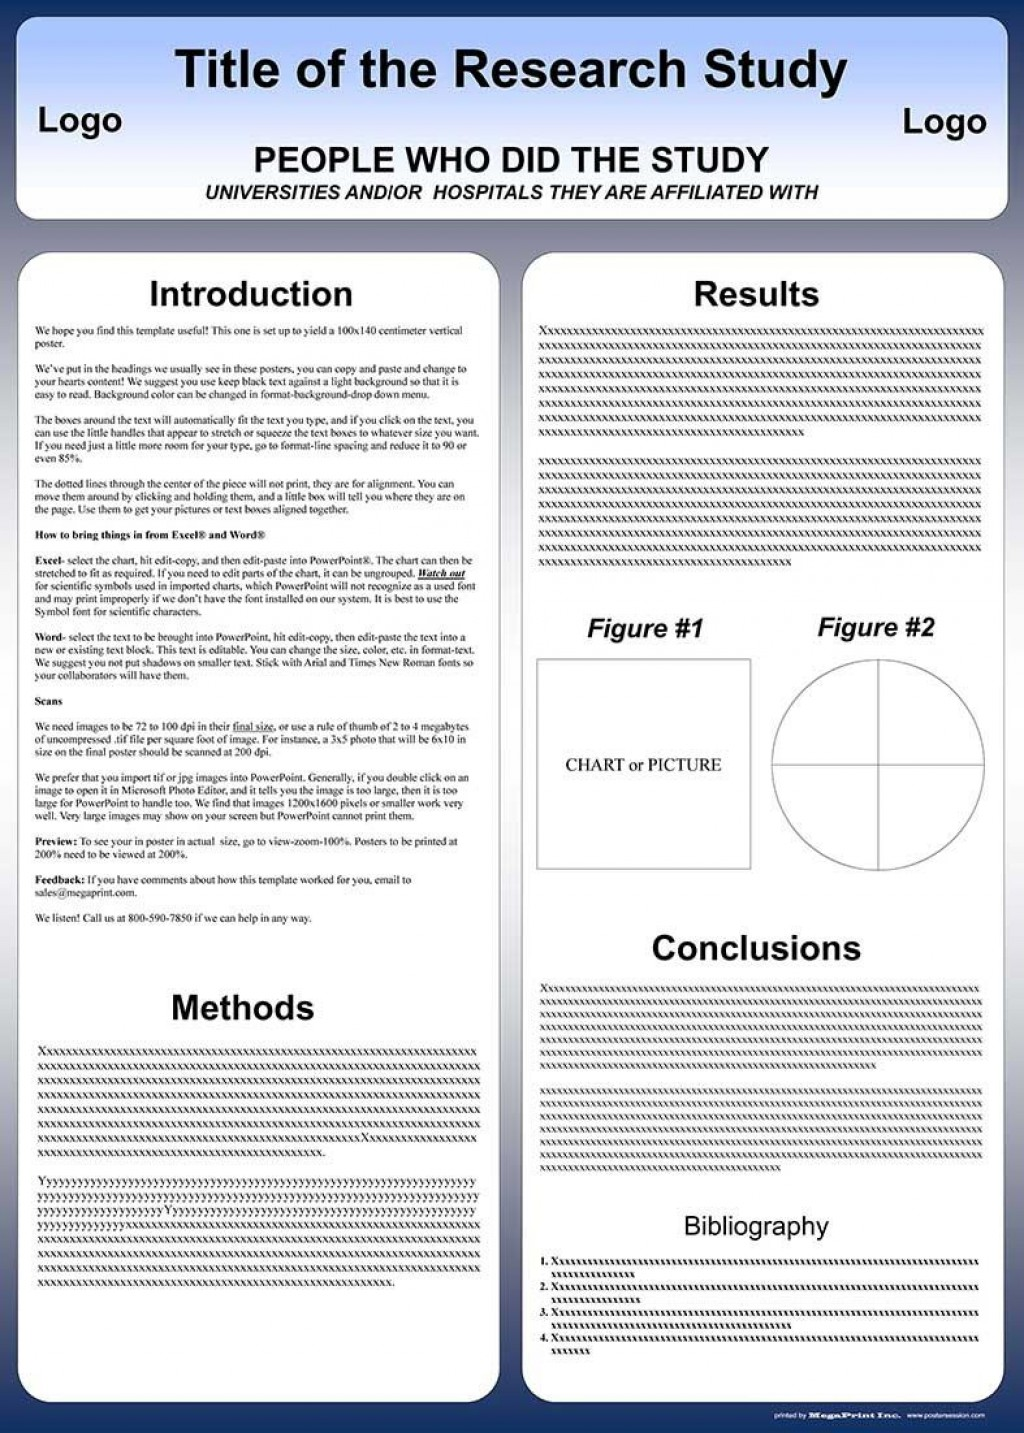 004 Remarkable Poster Presentation Template Free Download Picture  1m X A0Large